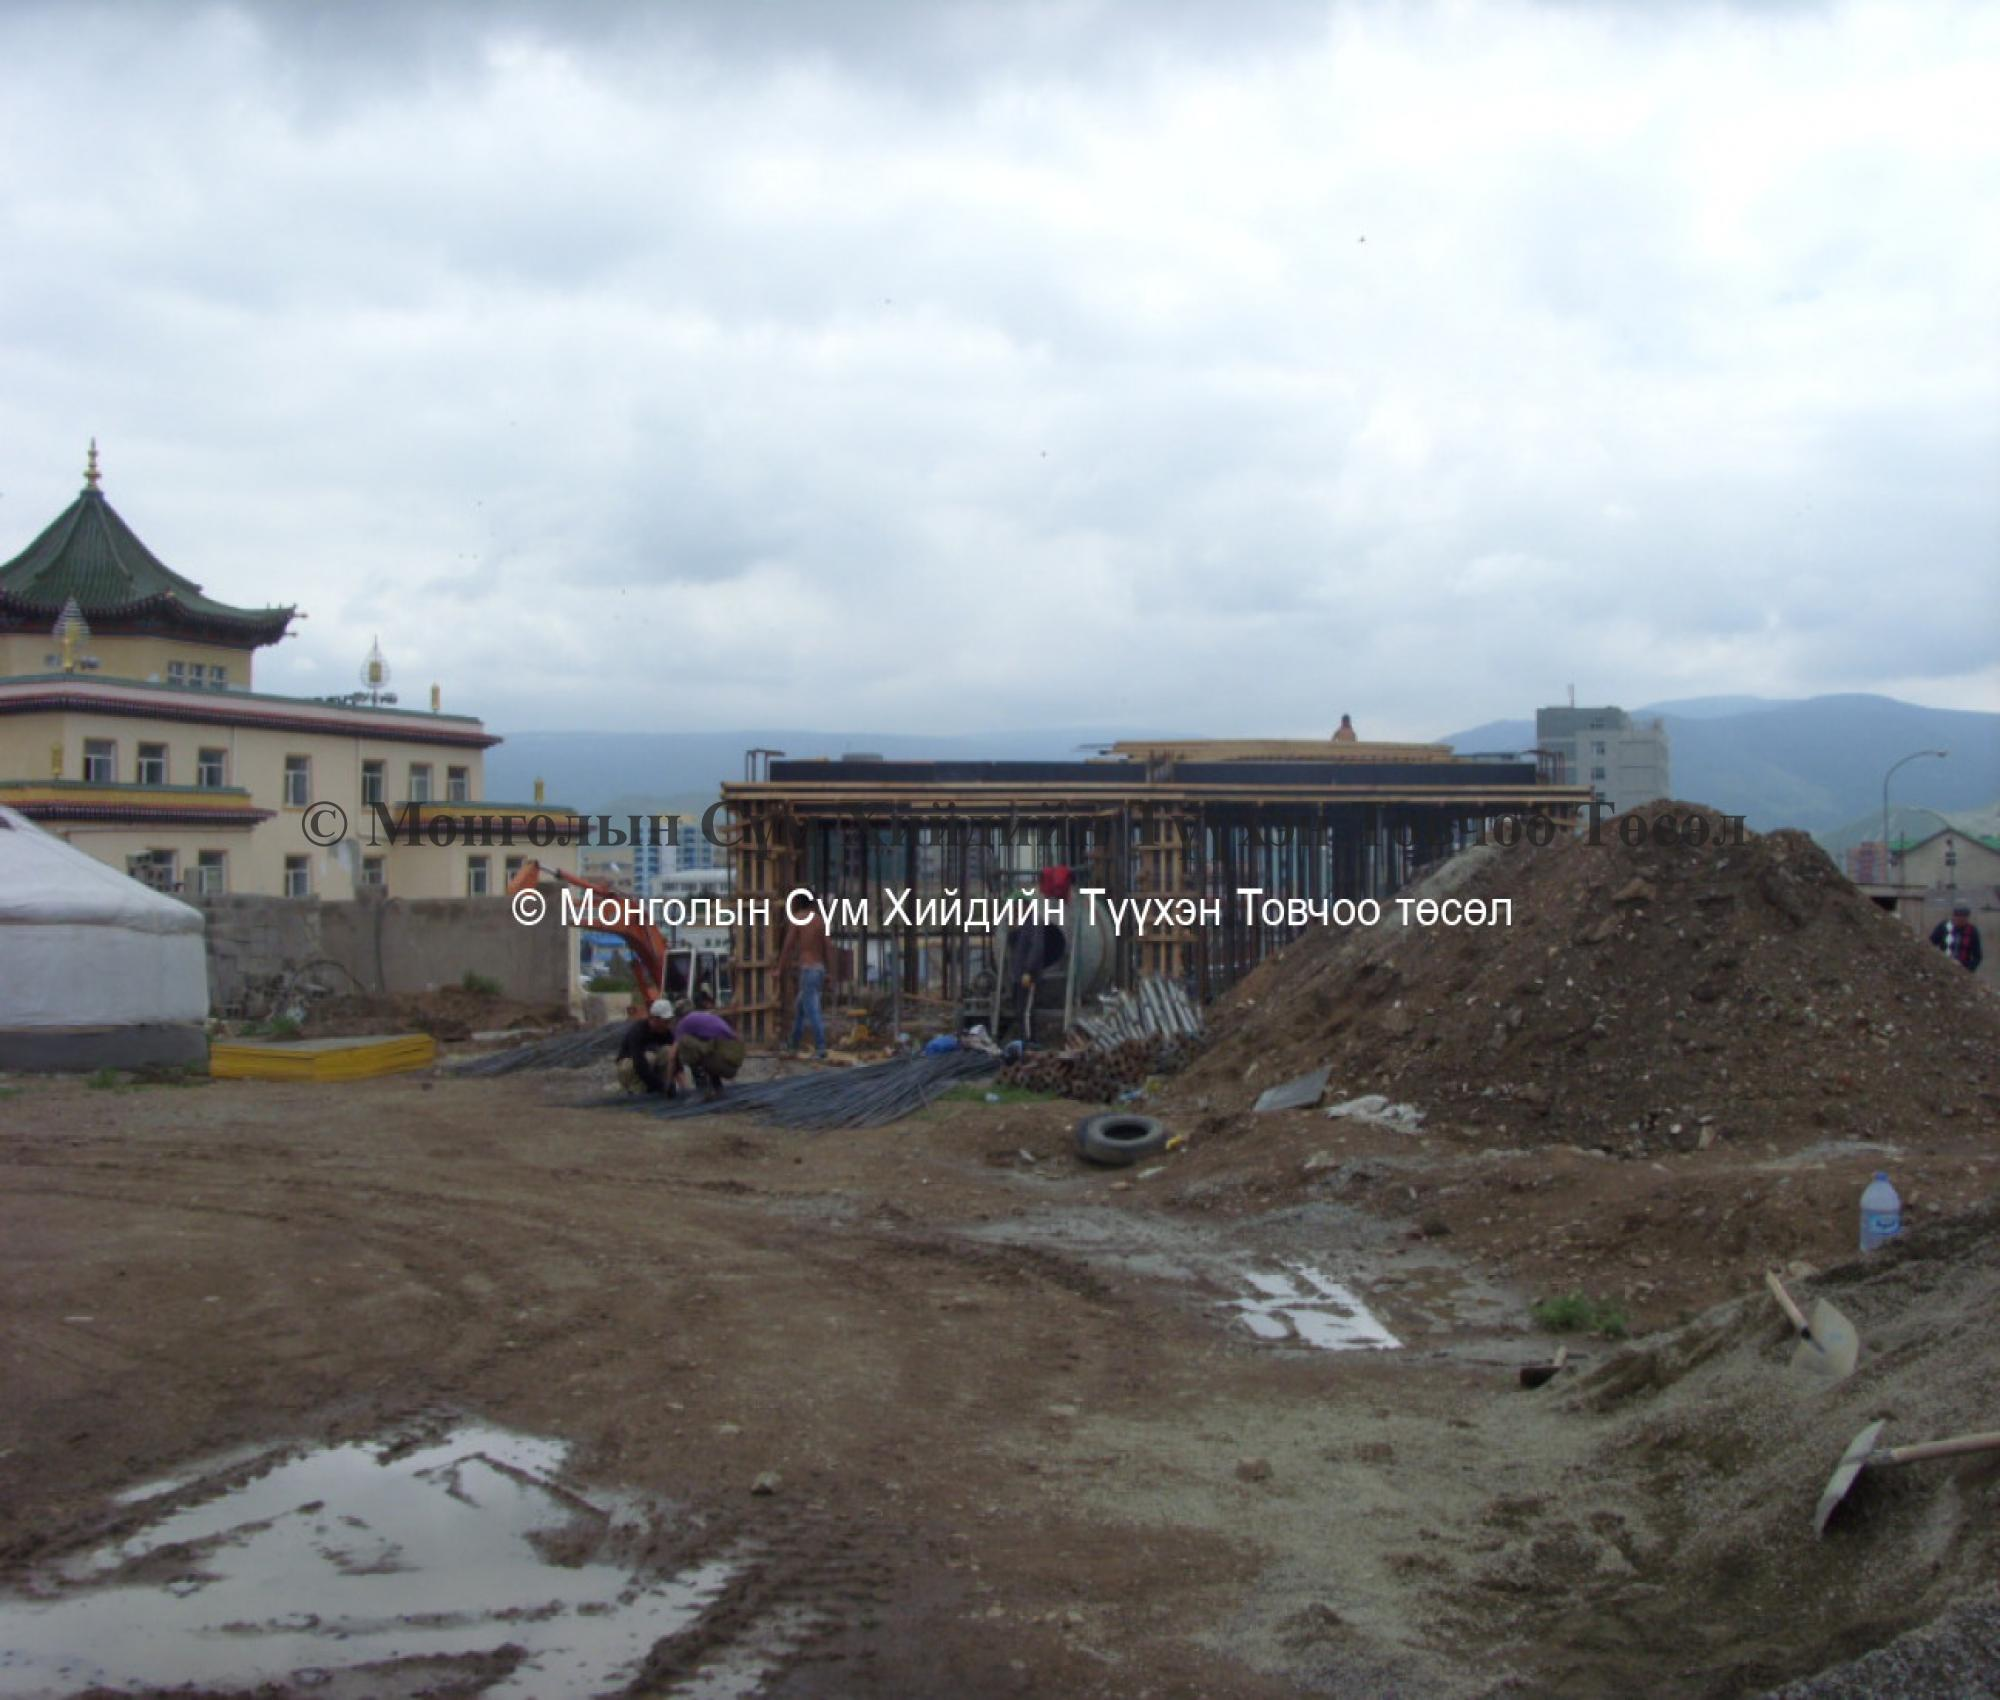 Another building is being built behind the temple